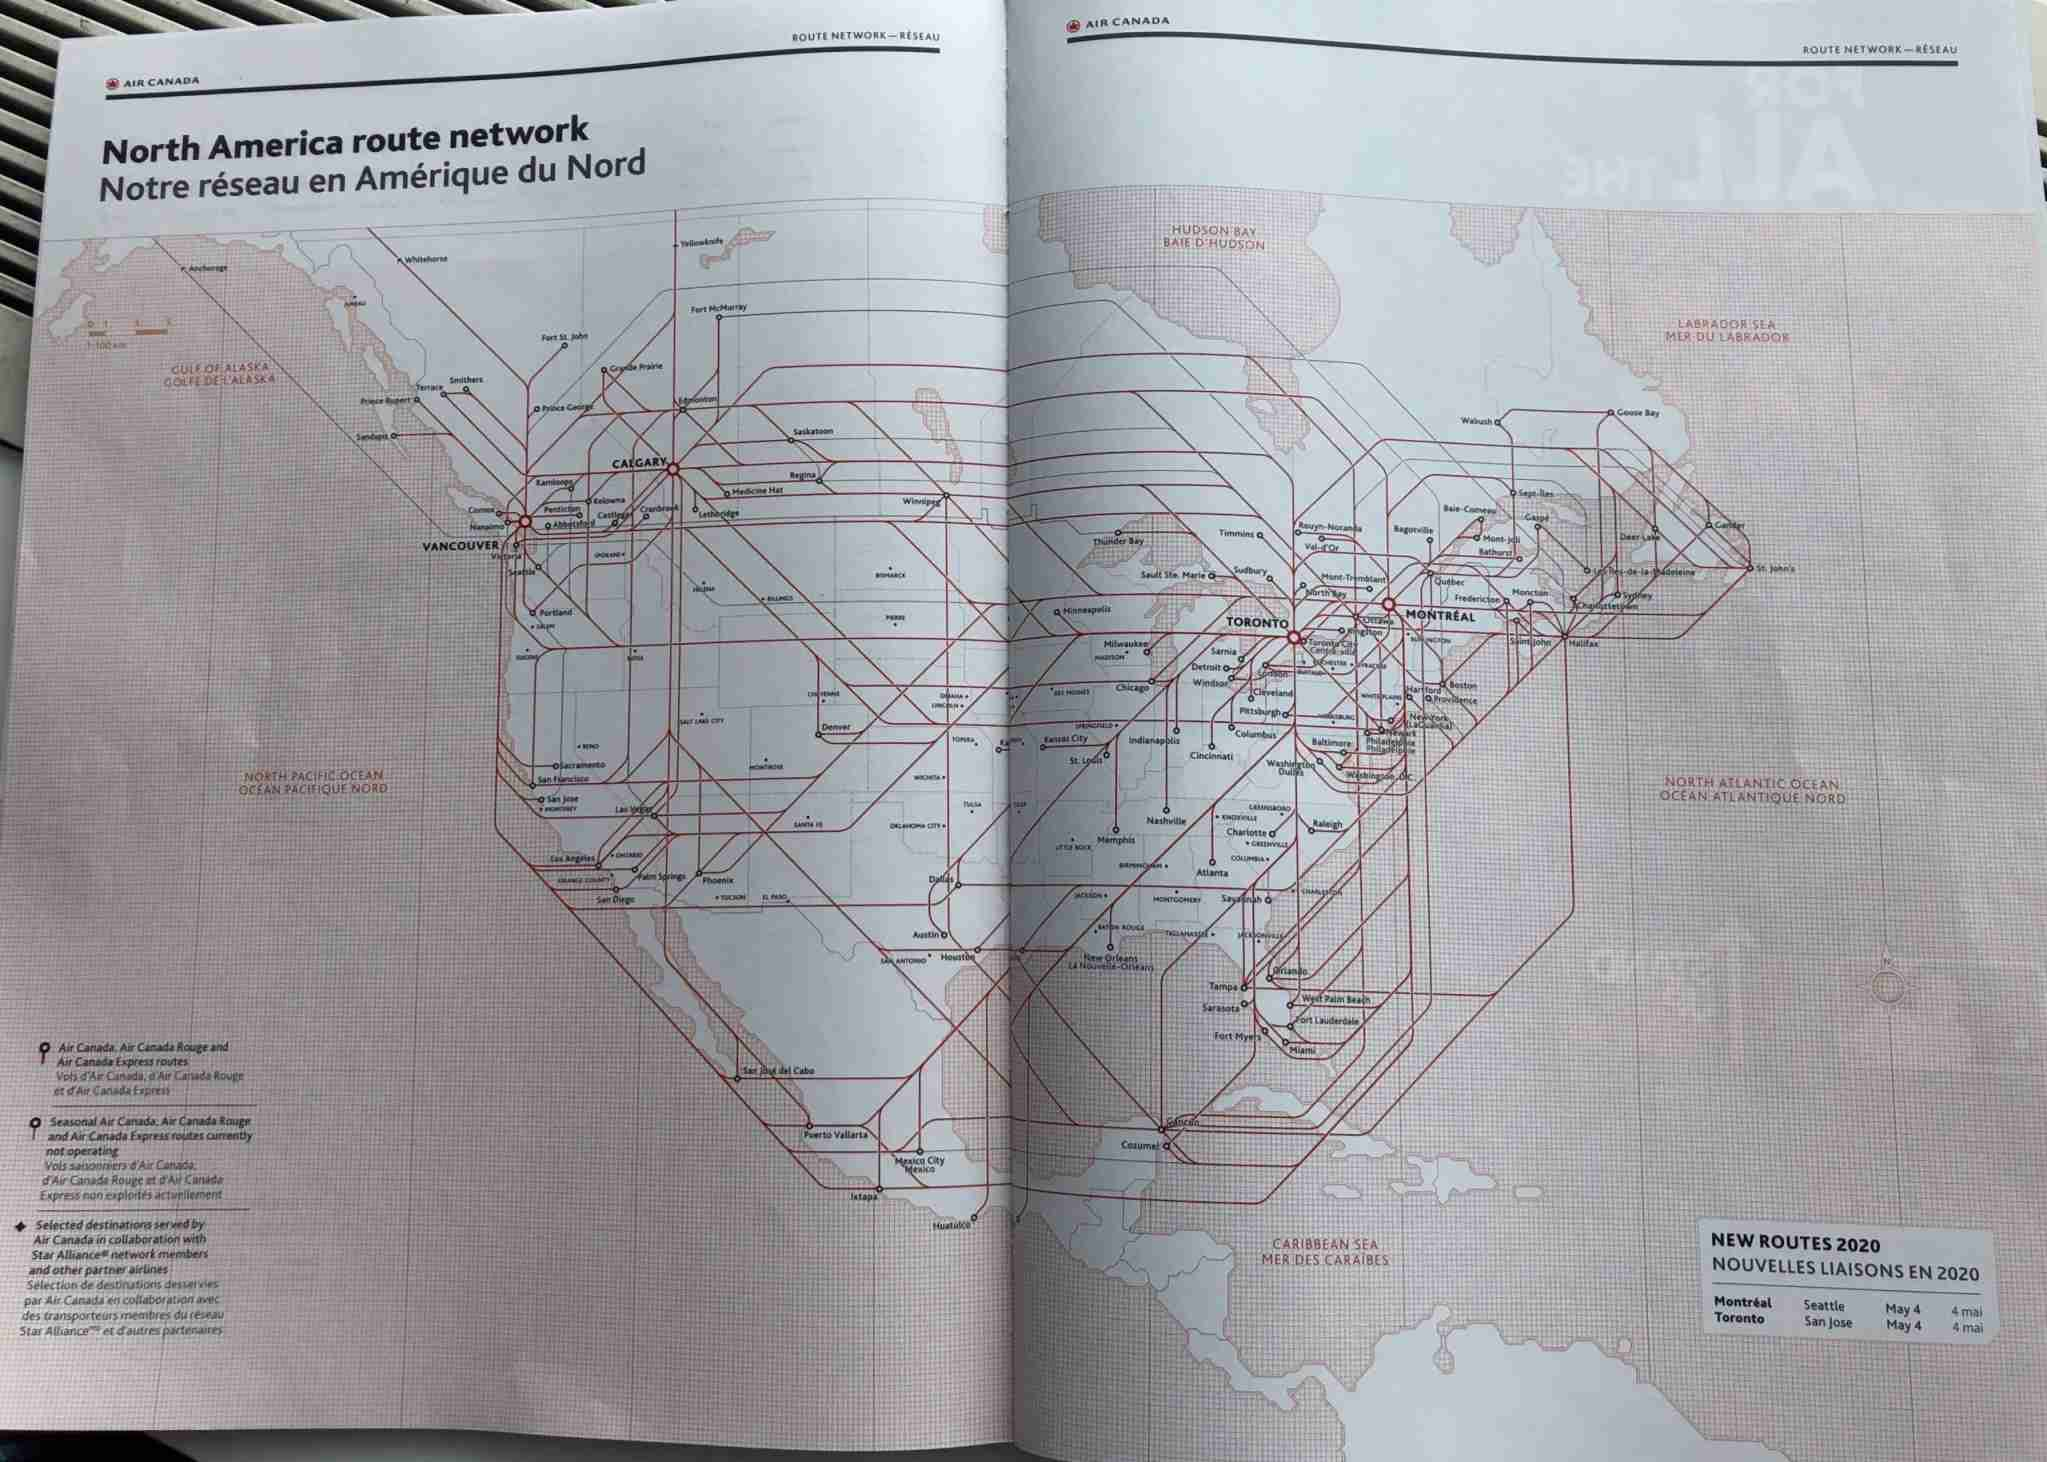 Air Canada North America route map, January 2020. (Photo by Edward Russell/TPG)